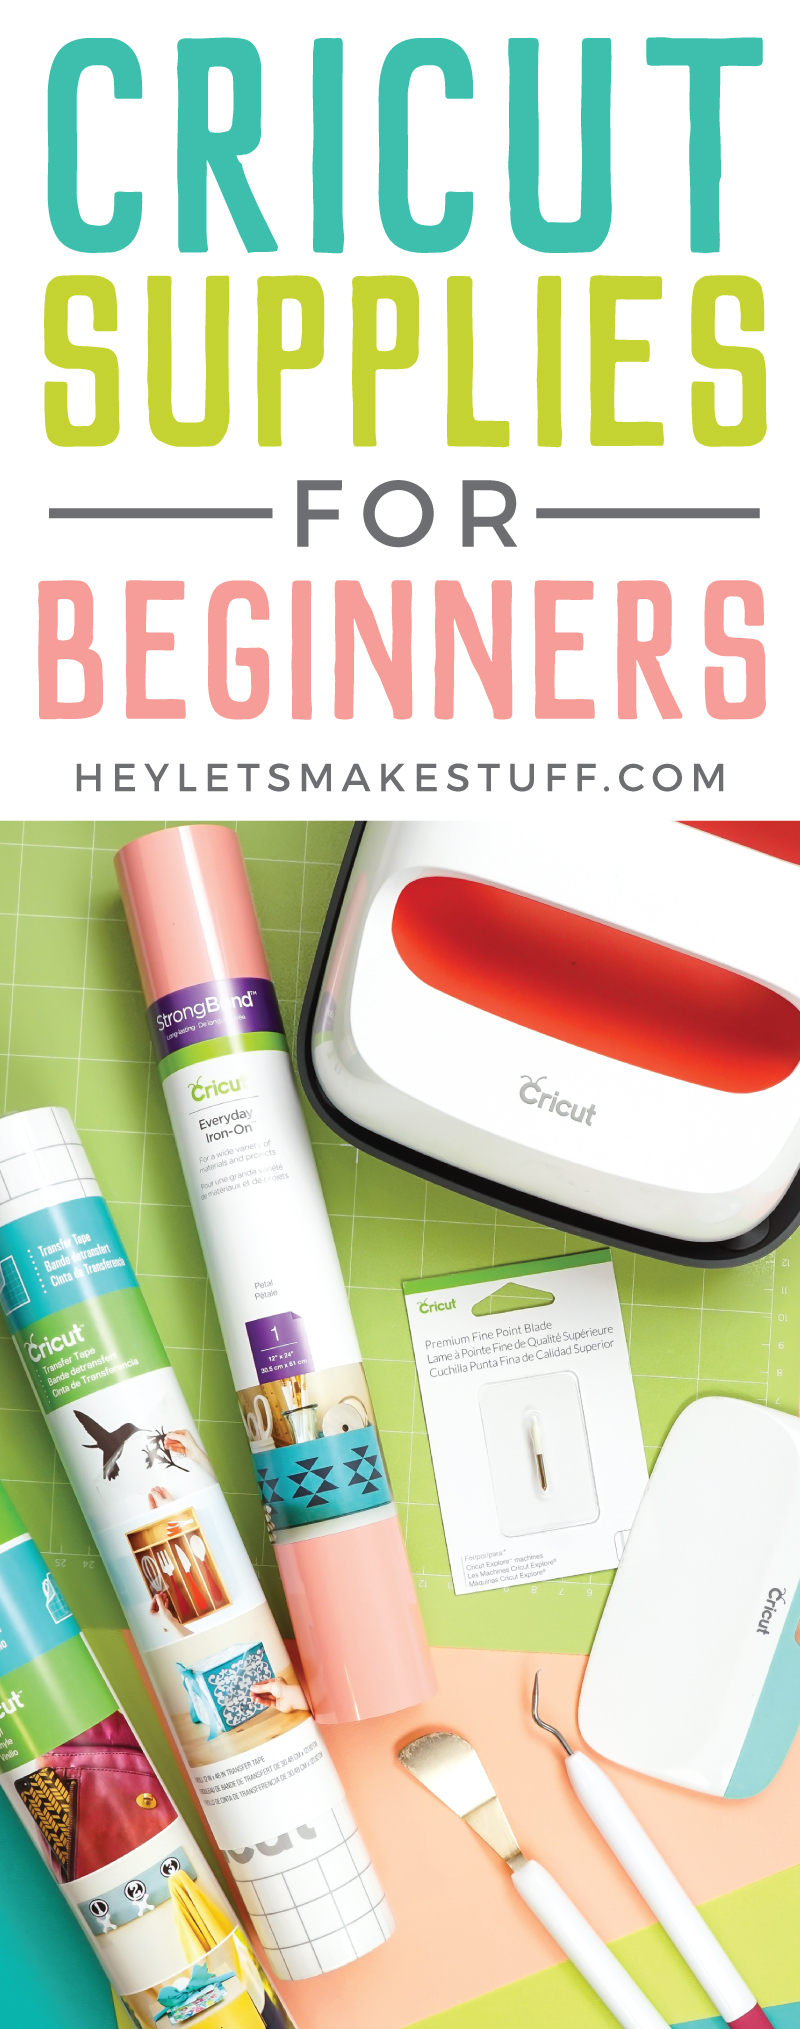 Figuring out what you need to work your new Cricut can be intimidating! Here are the supplies you'll need if you're a Cricut beginner—this Cricut gift guide will help you save money and get exactly what you need to start. via @heyletsmakestuf